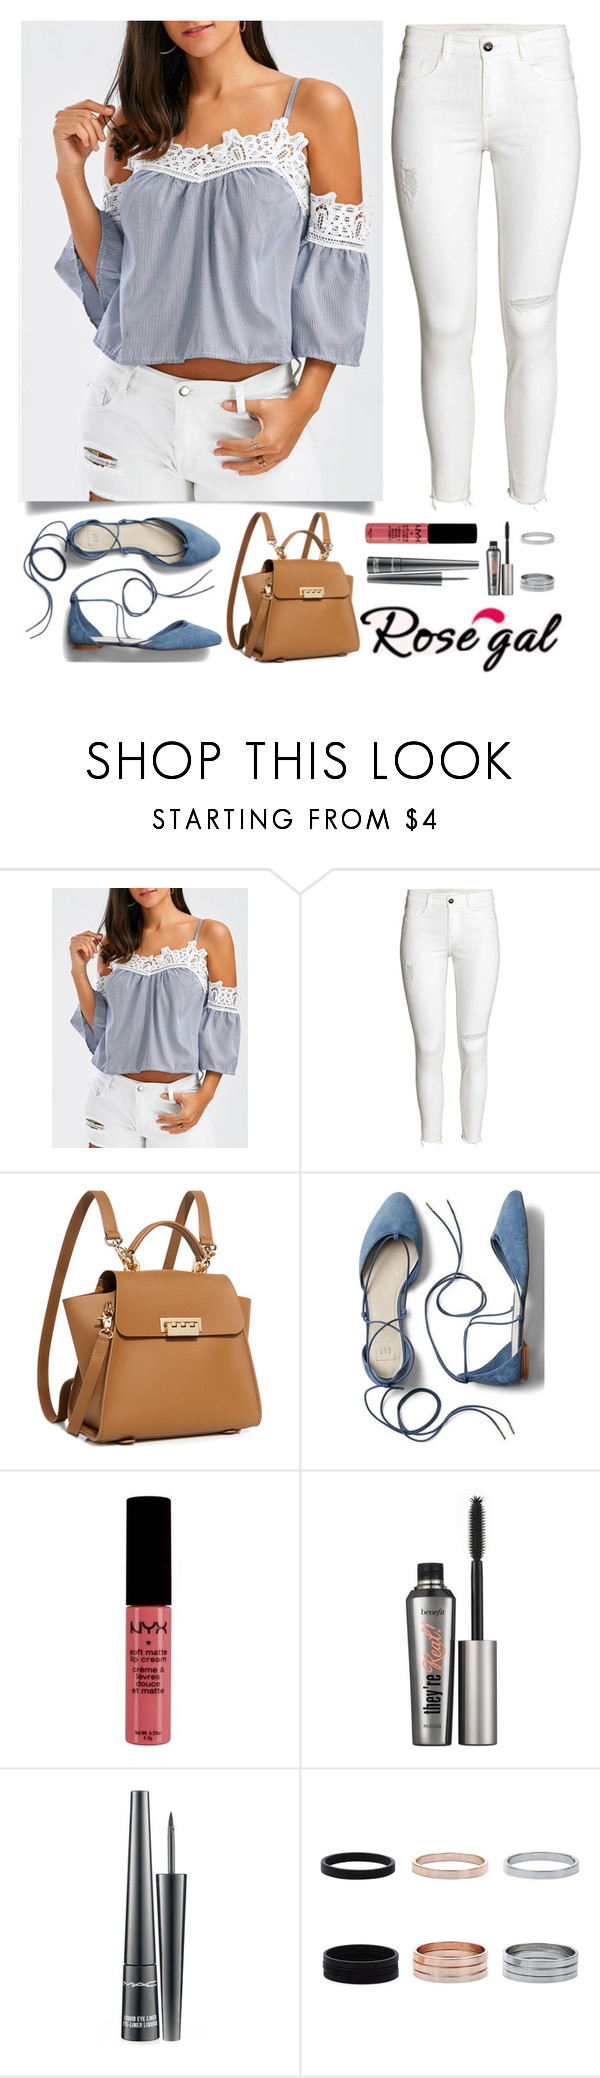 """""""Cold Shoulder Top"""" by kmeowj ❤ liked on Polyvore featuring ZAC Zac Posen, Gap, NYX, Benefit and MAC Cosmetics"""